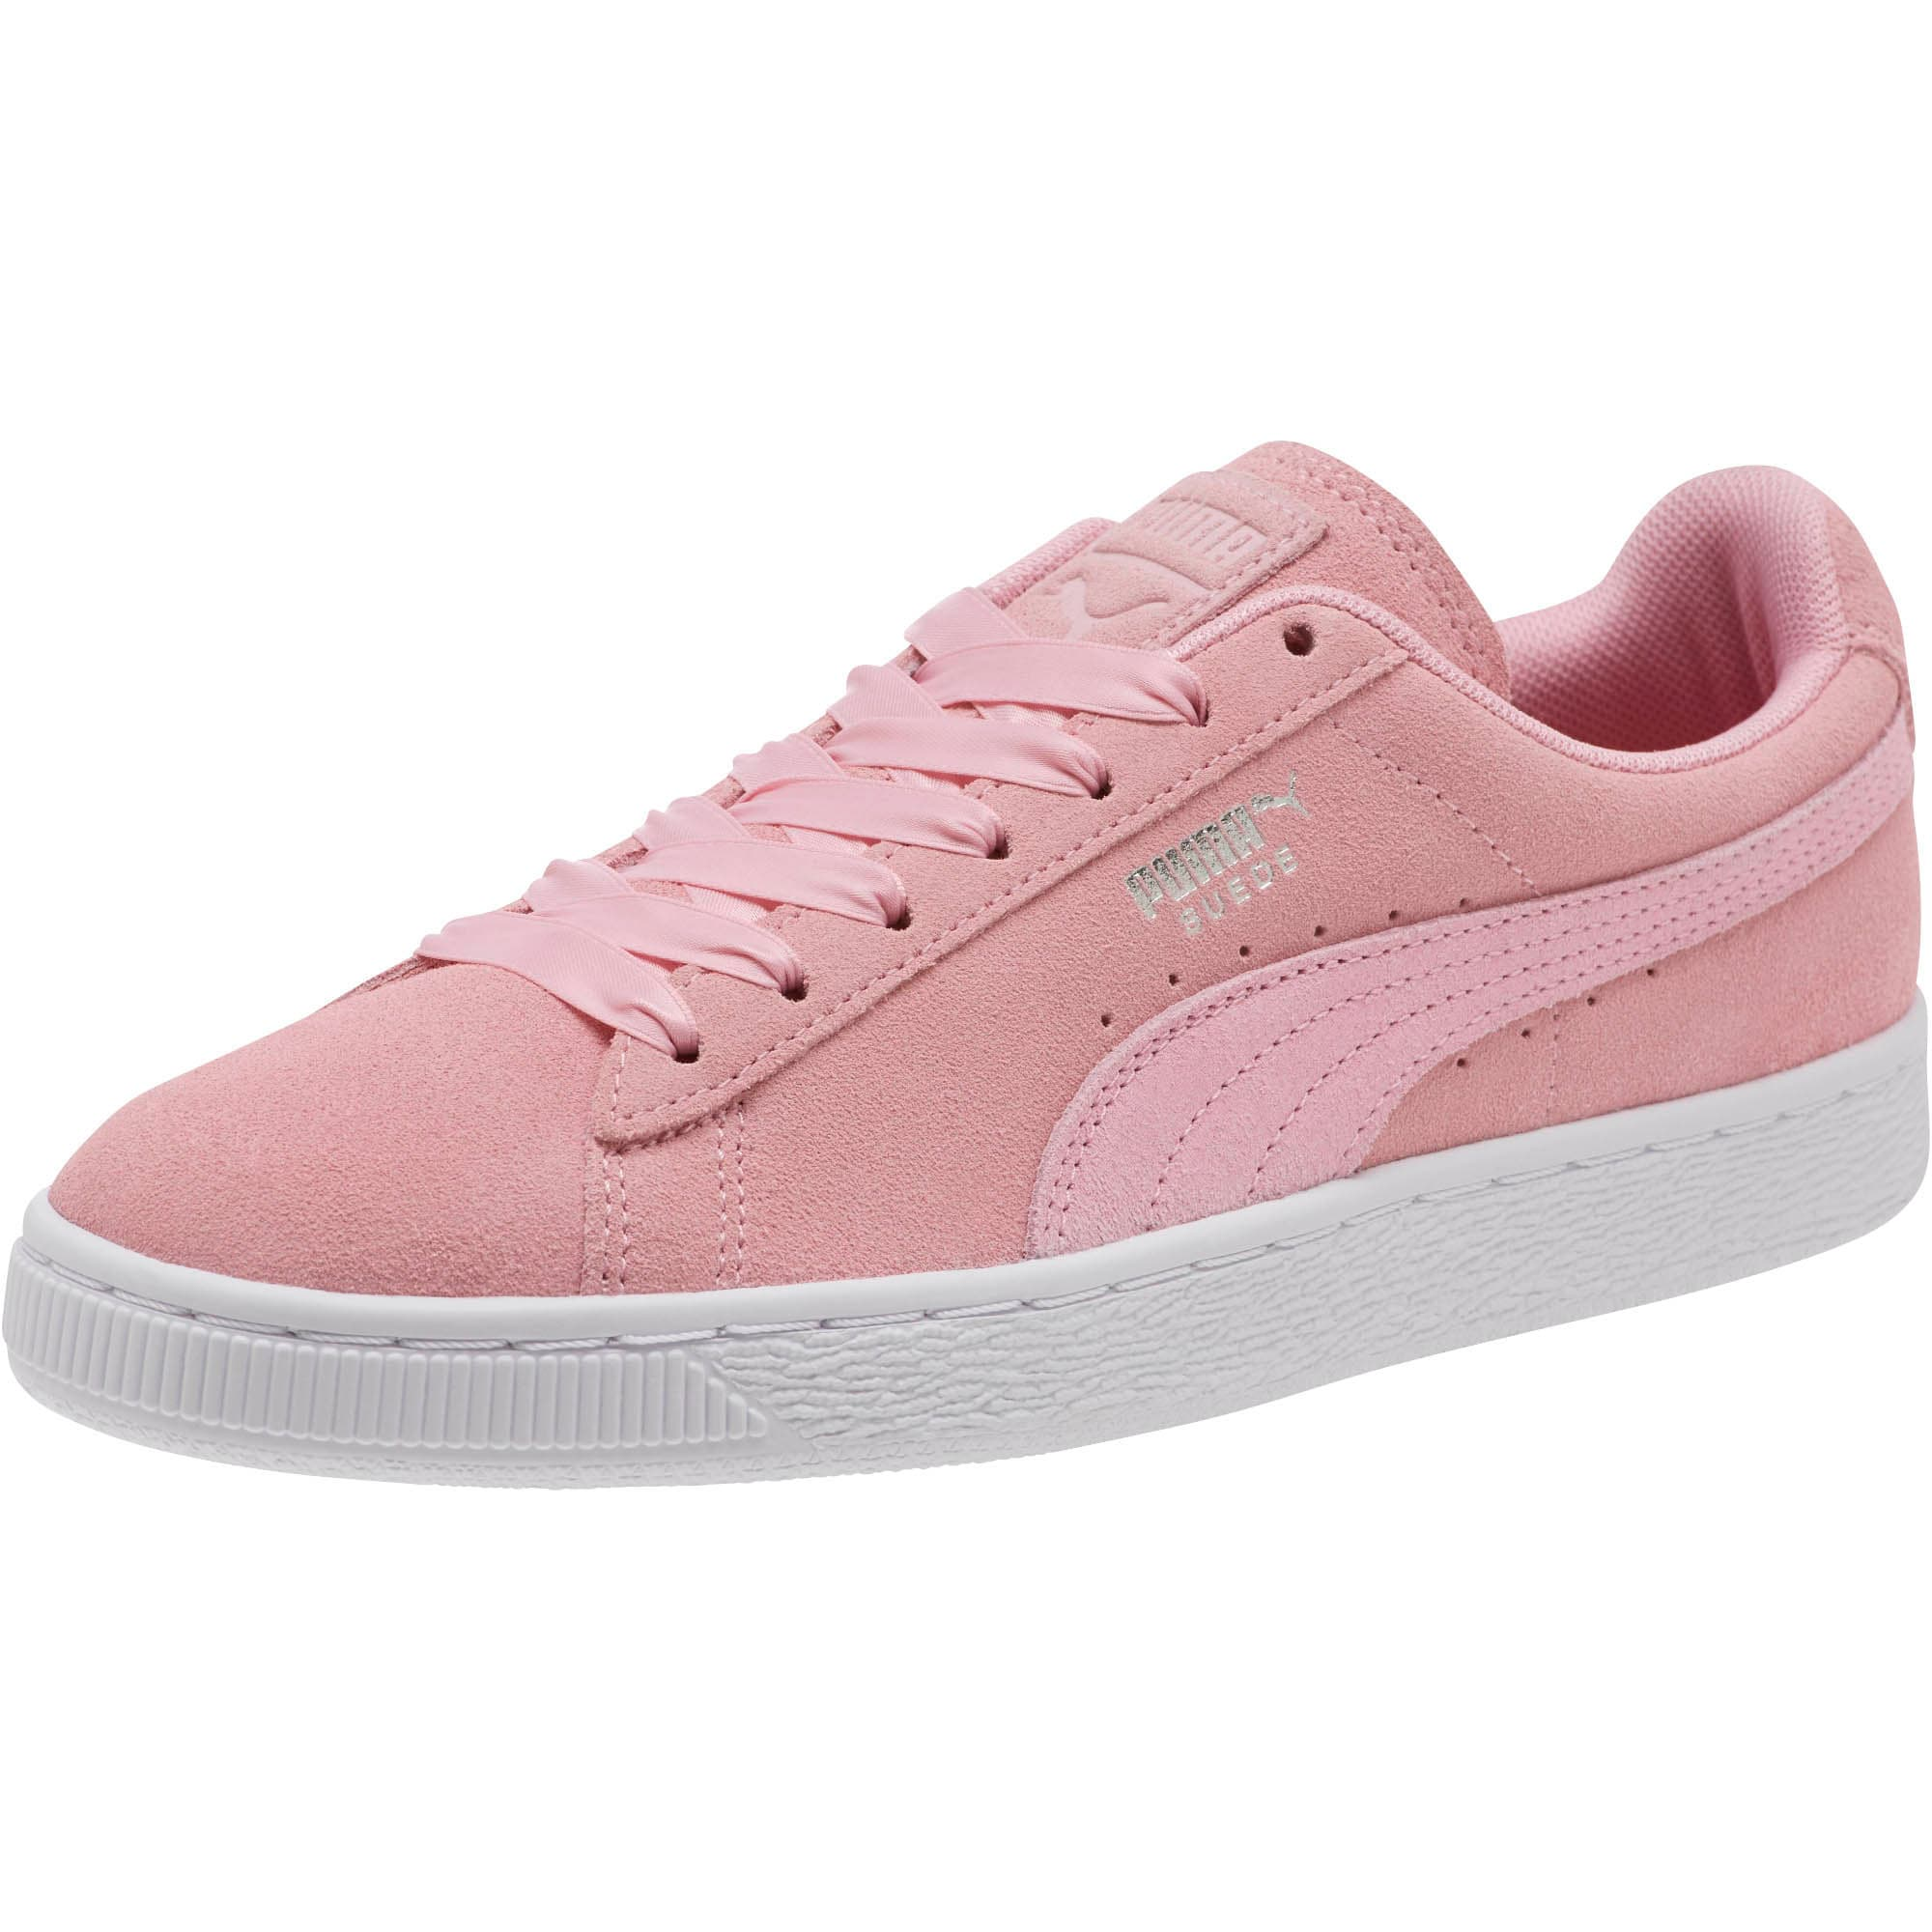 new style d61d3 1a774 Suede Galaxy Women's Sneakers